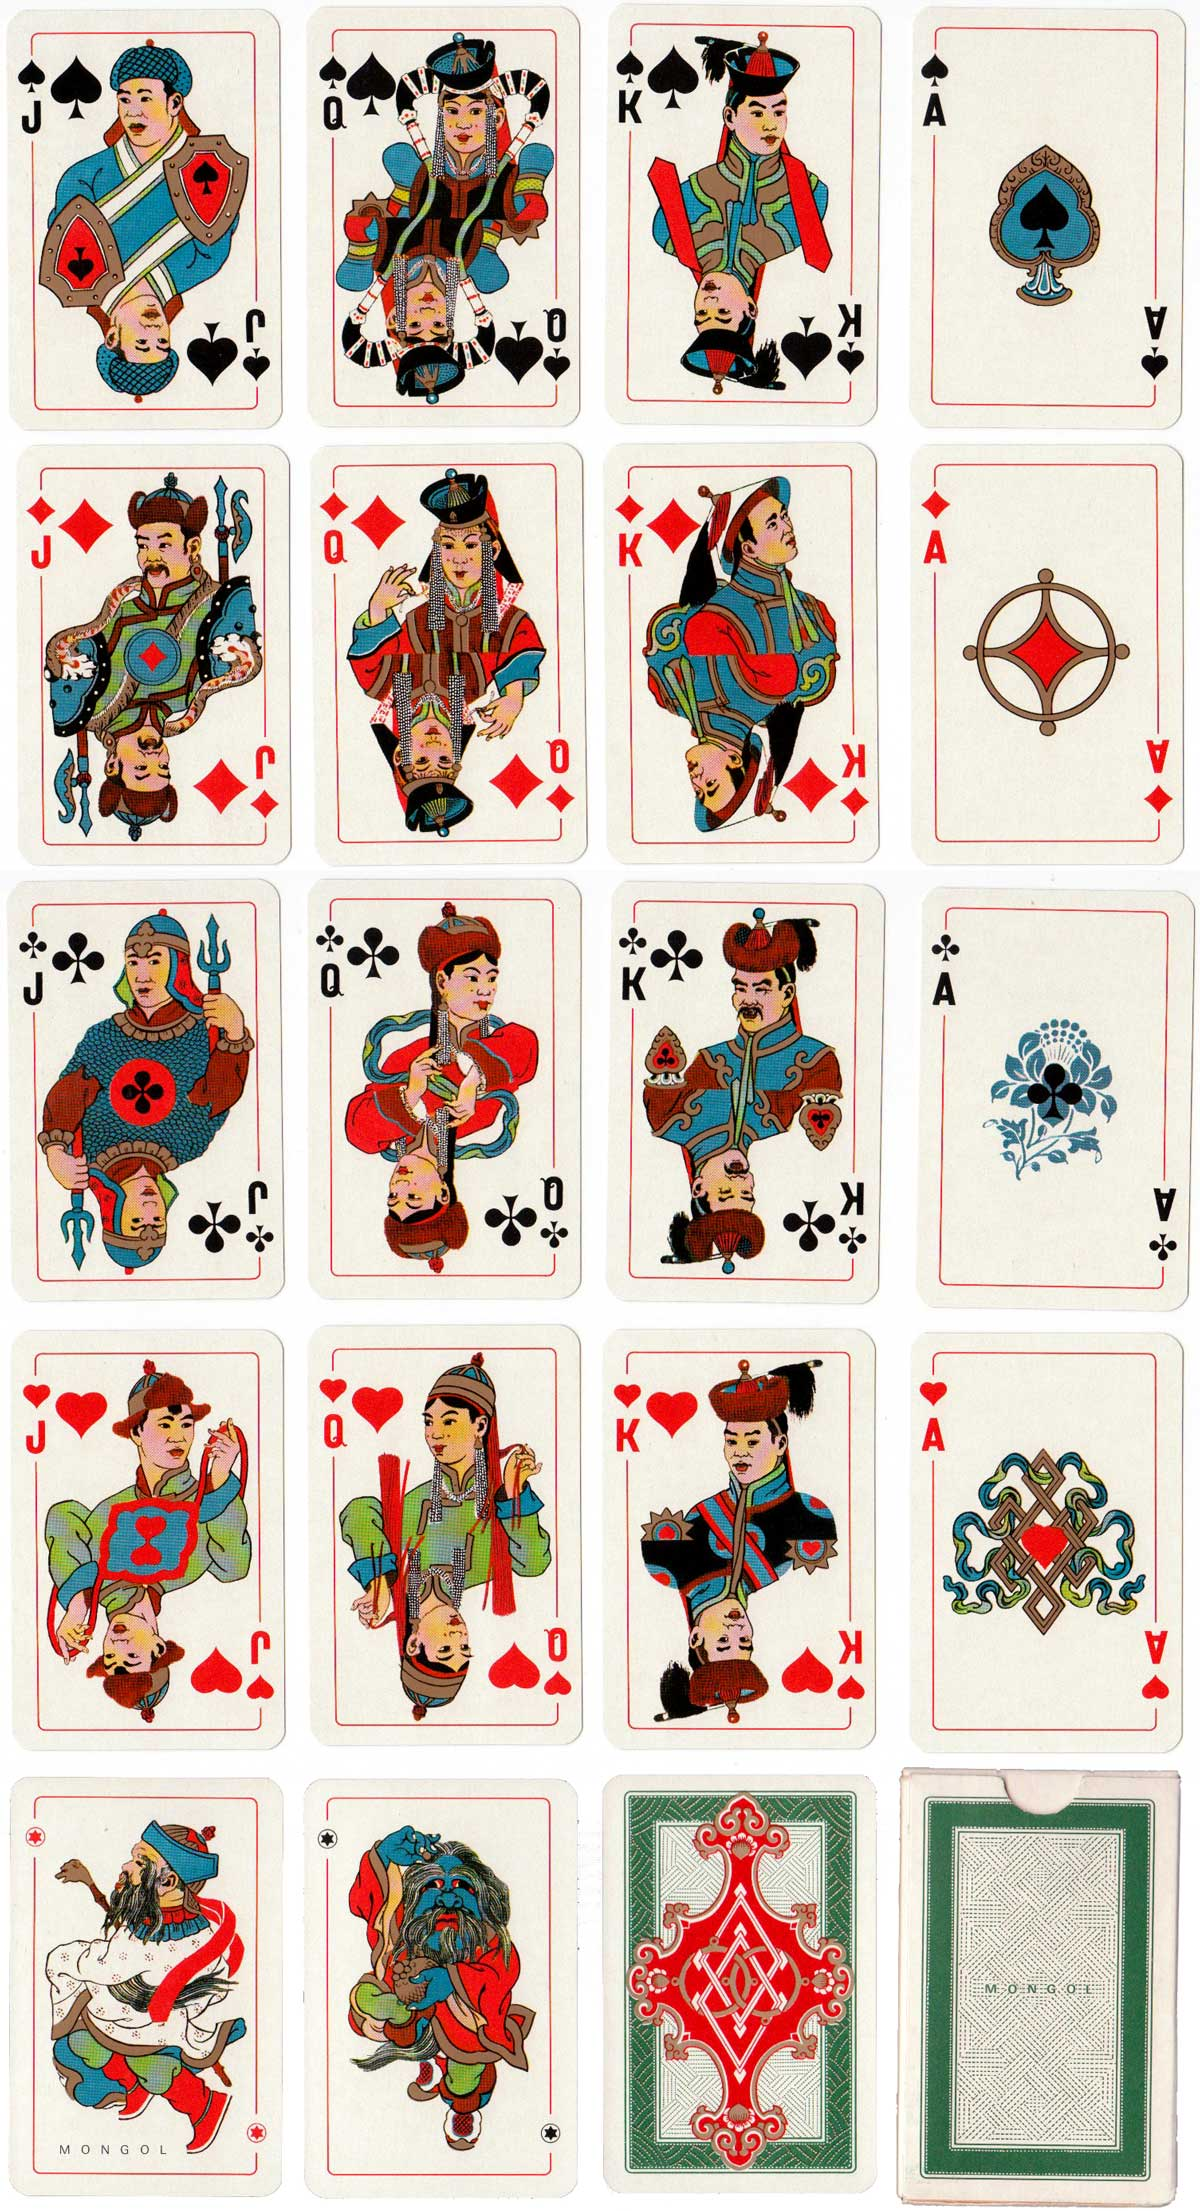 Mongol Playing Cards made by Piatnik & Söhne AG, Wien, 1973